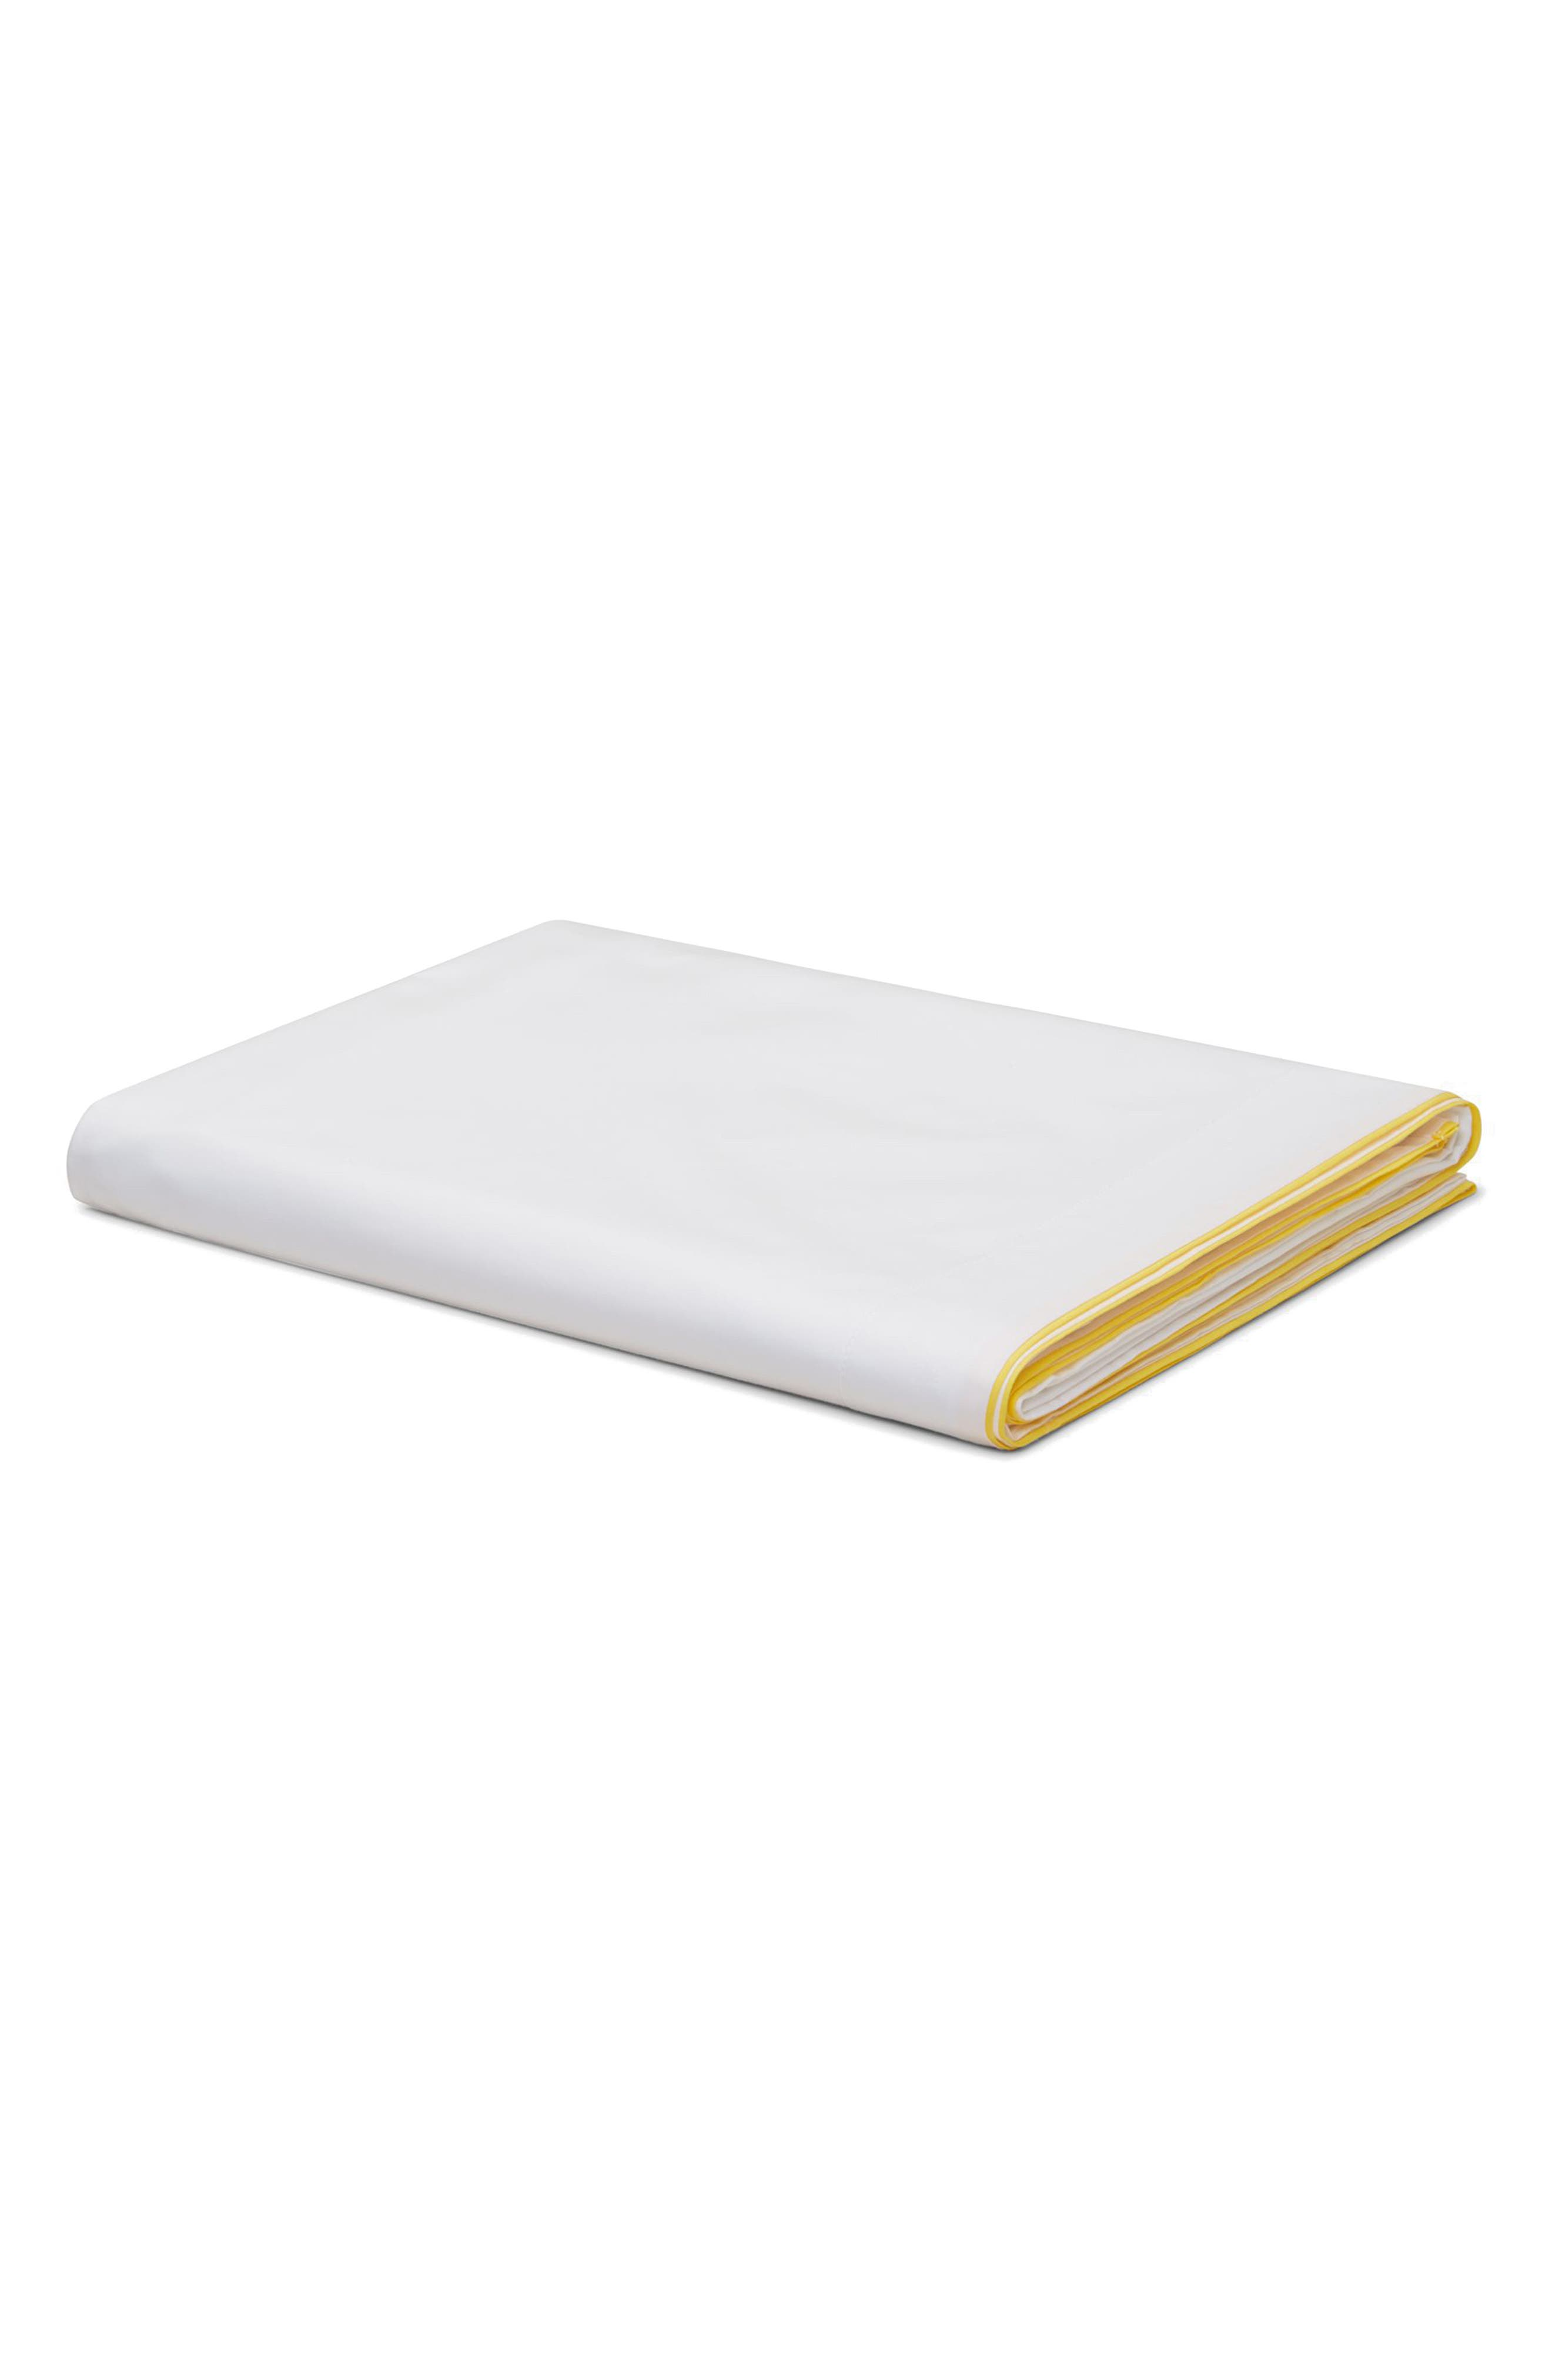 Series 01 500 Thread Count Fitted Sheet,                             Alternate thumbnail 3, color,                             700